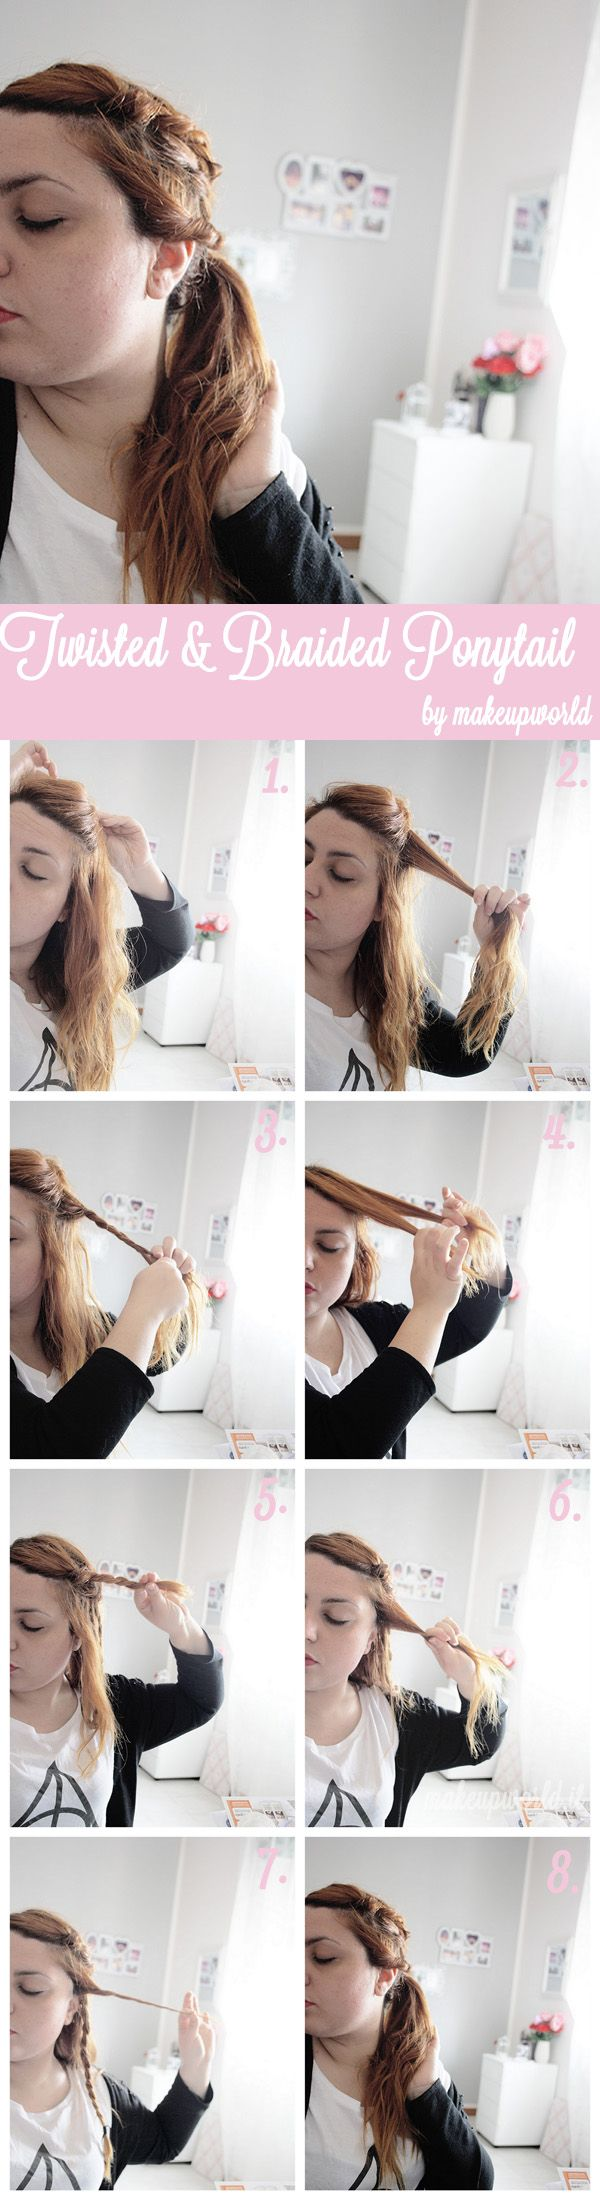 twisted and braided ponytail tutorial